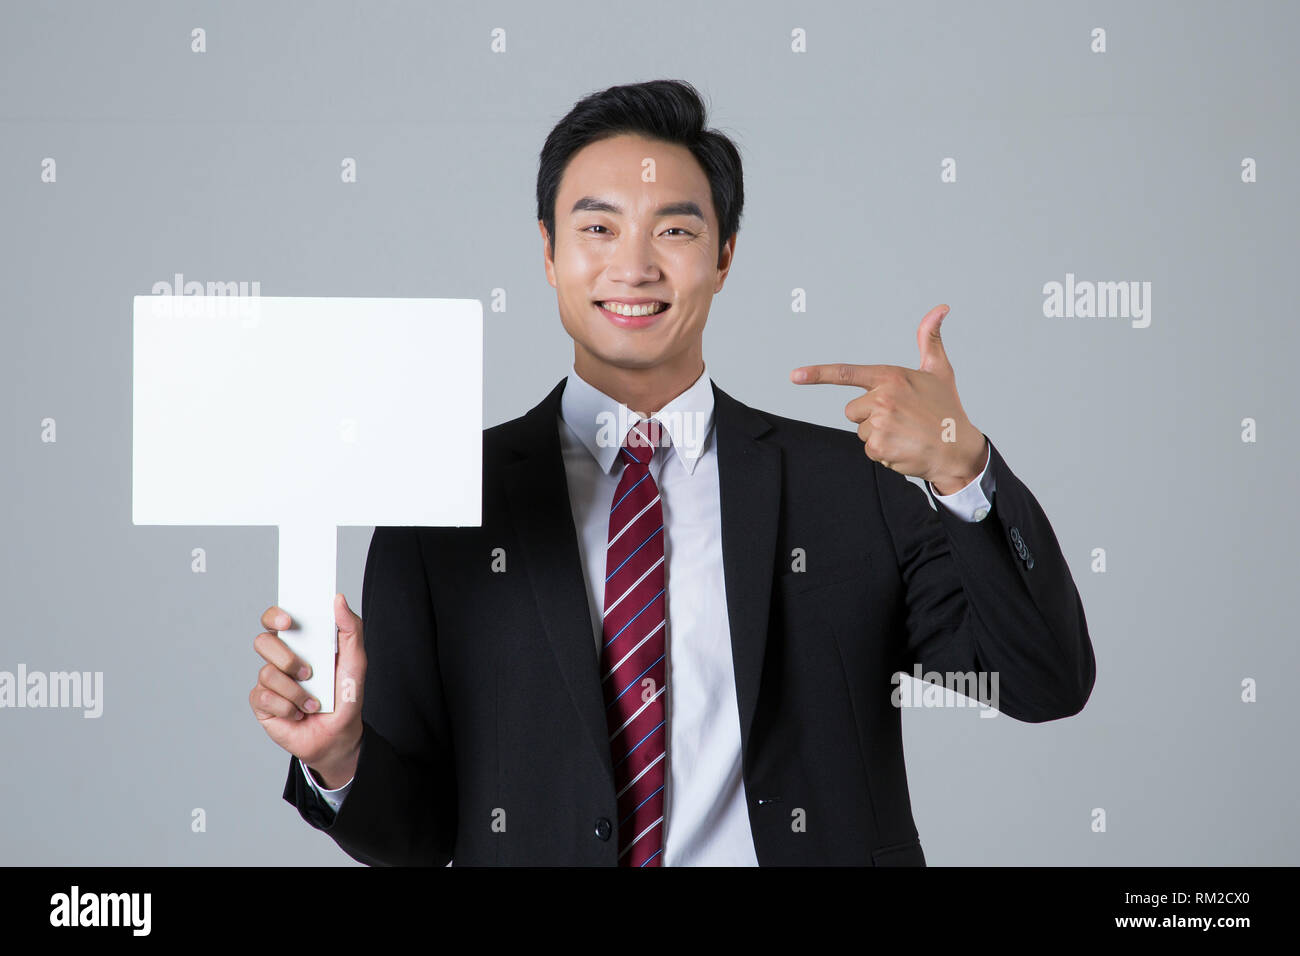 Young businessman concept photo. 149 - Stock Image